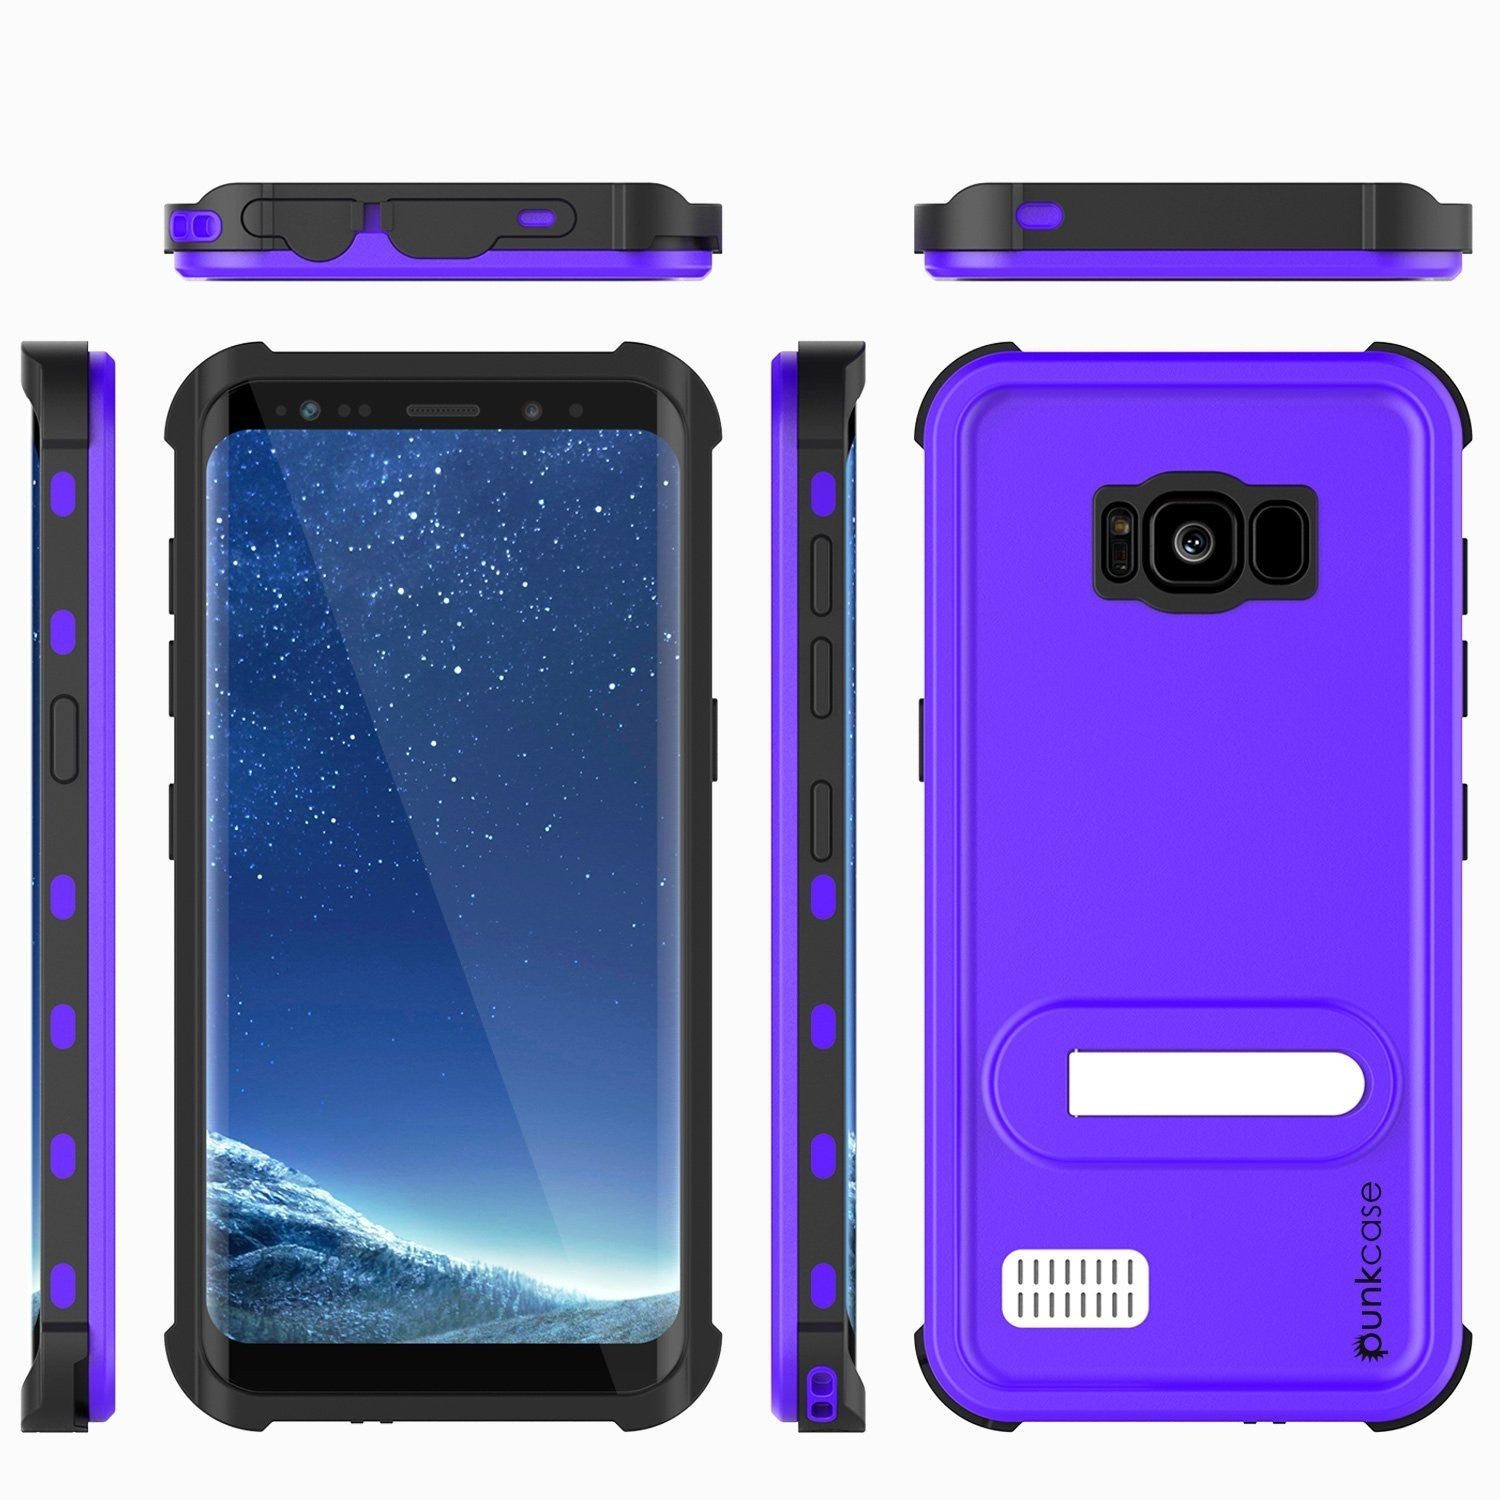 Galaxy S8 Waterproof Case, Punkcase KickStud Purple Series, [Slim Fit] [IP68 Certified] [Shockproof] [Snowproof] Armor Cover.